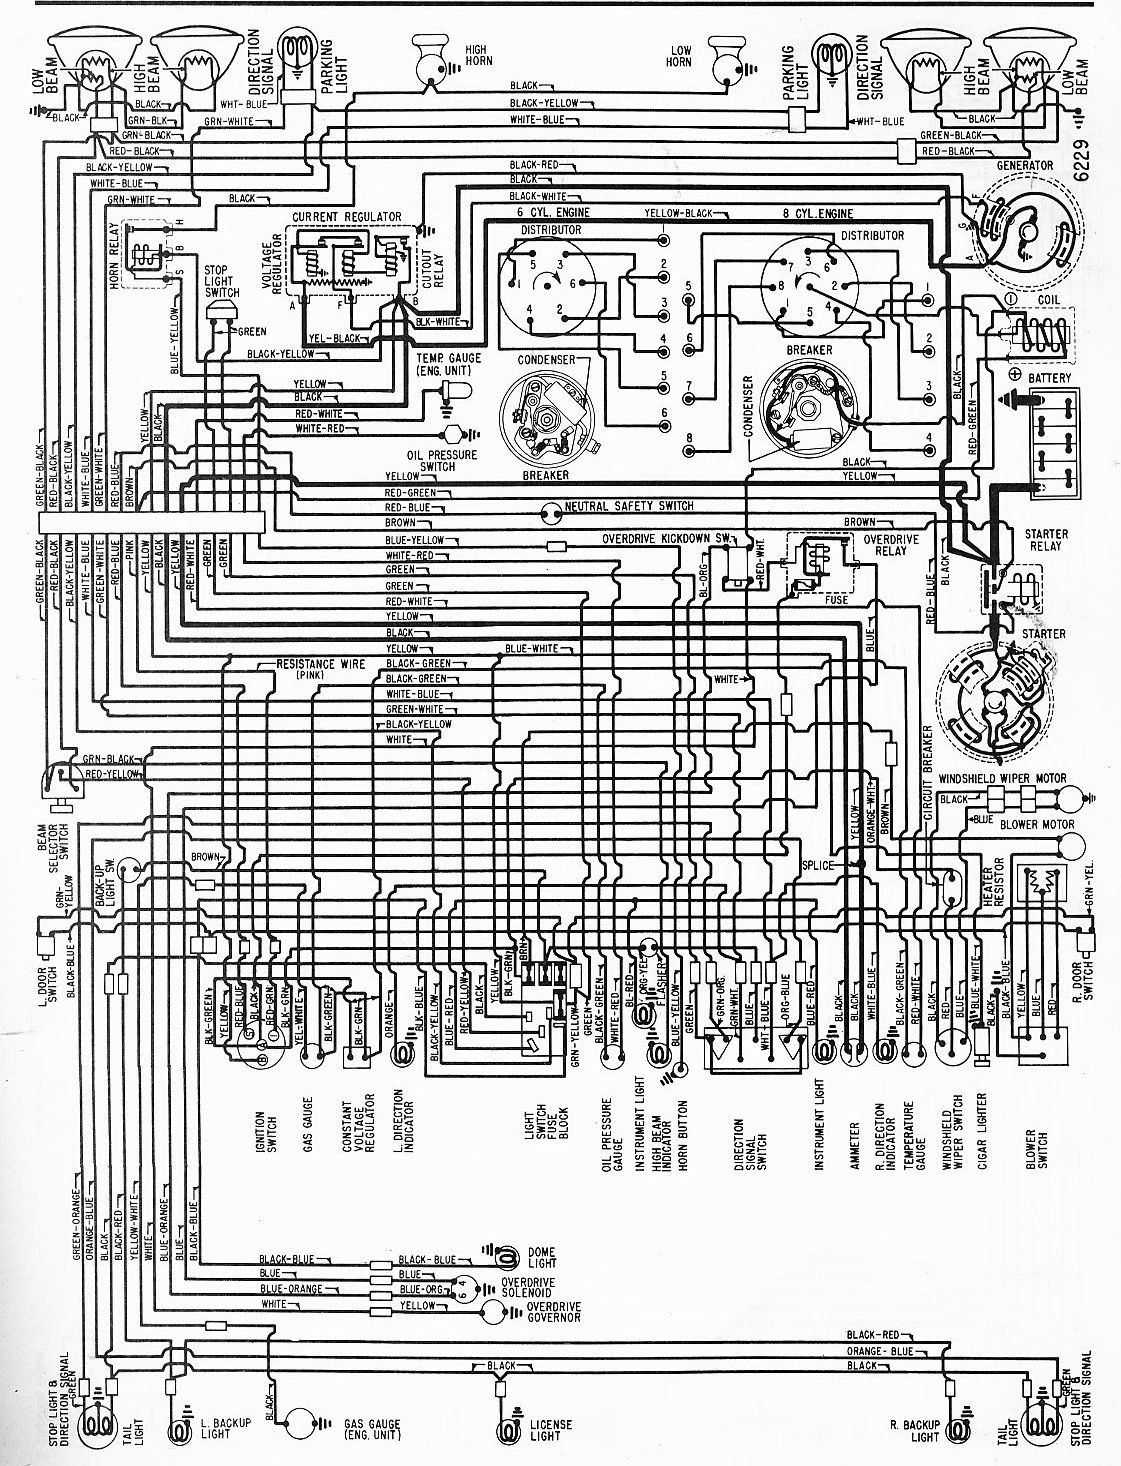 [DIAGRAM_38EU]  1970 Chevy C10 Fuse Box Diagram Wiring Diagram Portal • with regard to 1972  Chevy Truck Wiring Diagram | Chevy trucks, Chevy trucks older, Chevy | Hot Rod Schymatic Fuse Box |  | Pinterest